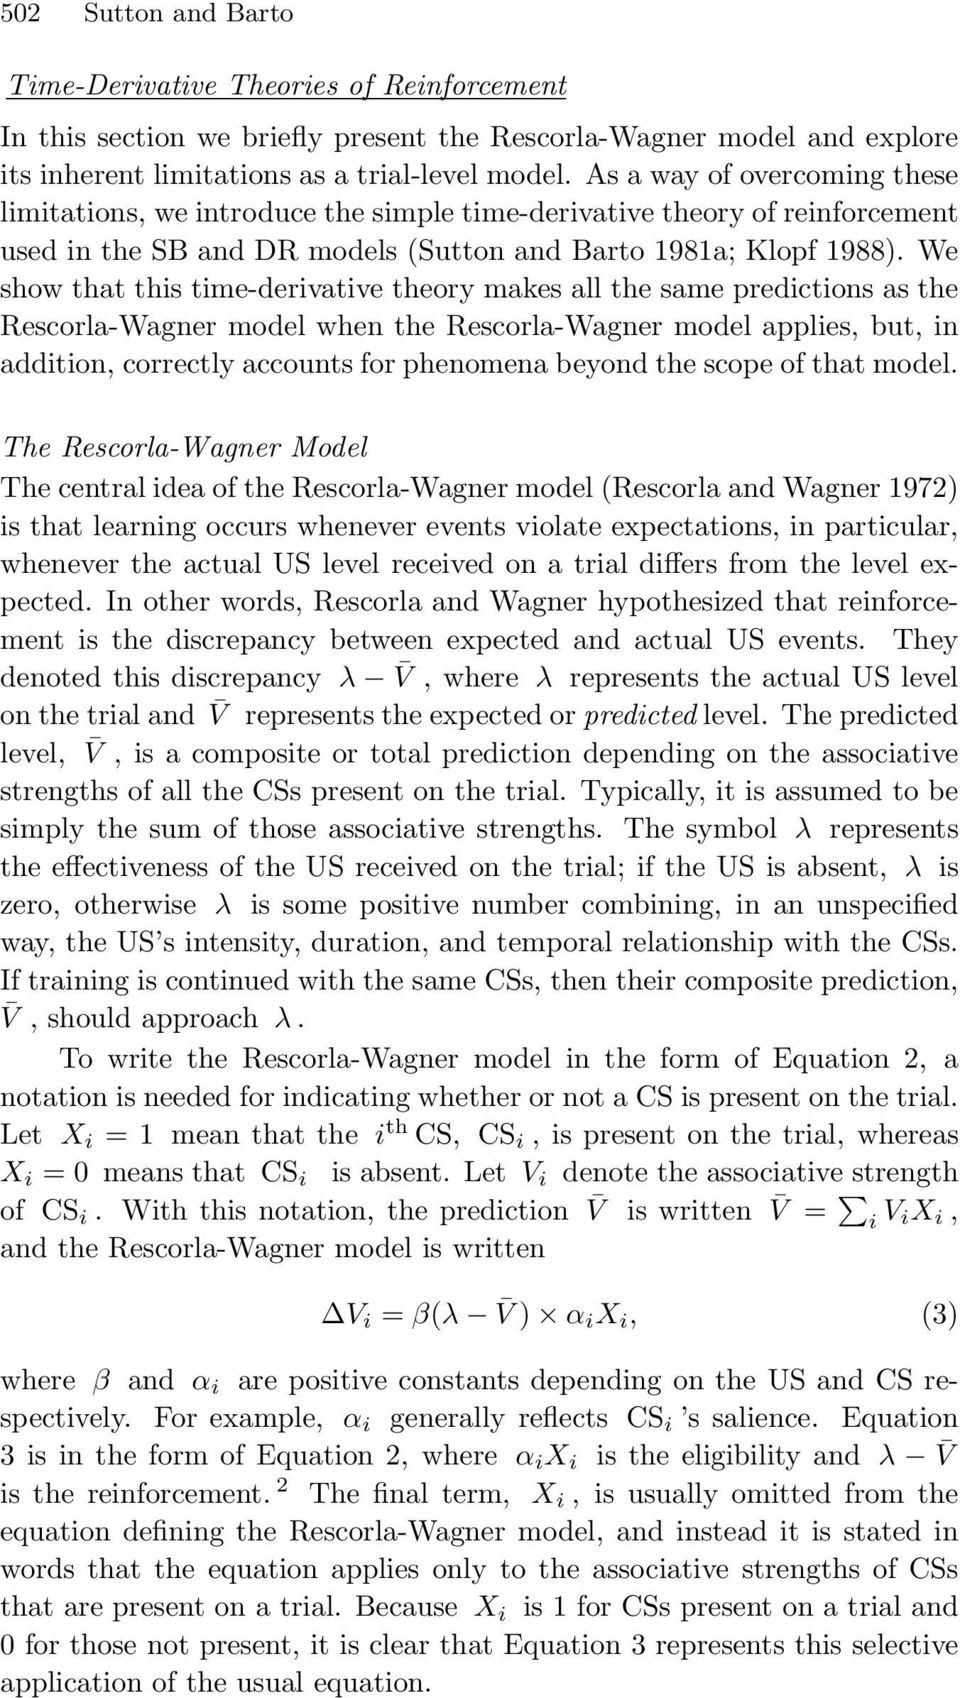 We show that this time-derivative theory makes all the same predictions as the Rescorla-Wagner model when the Rescorla-Wagner model applies, but, in addition, correctly accounts for phenomena beyond